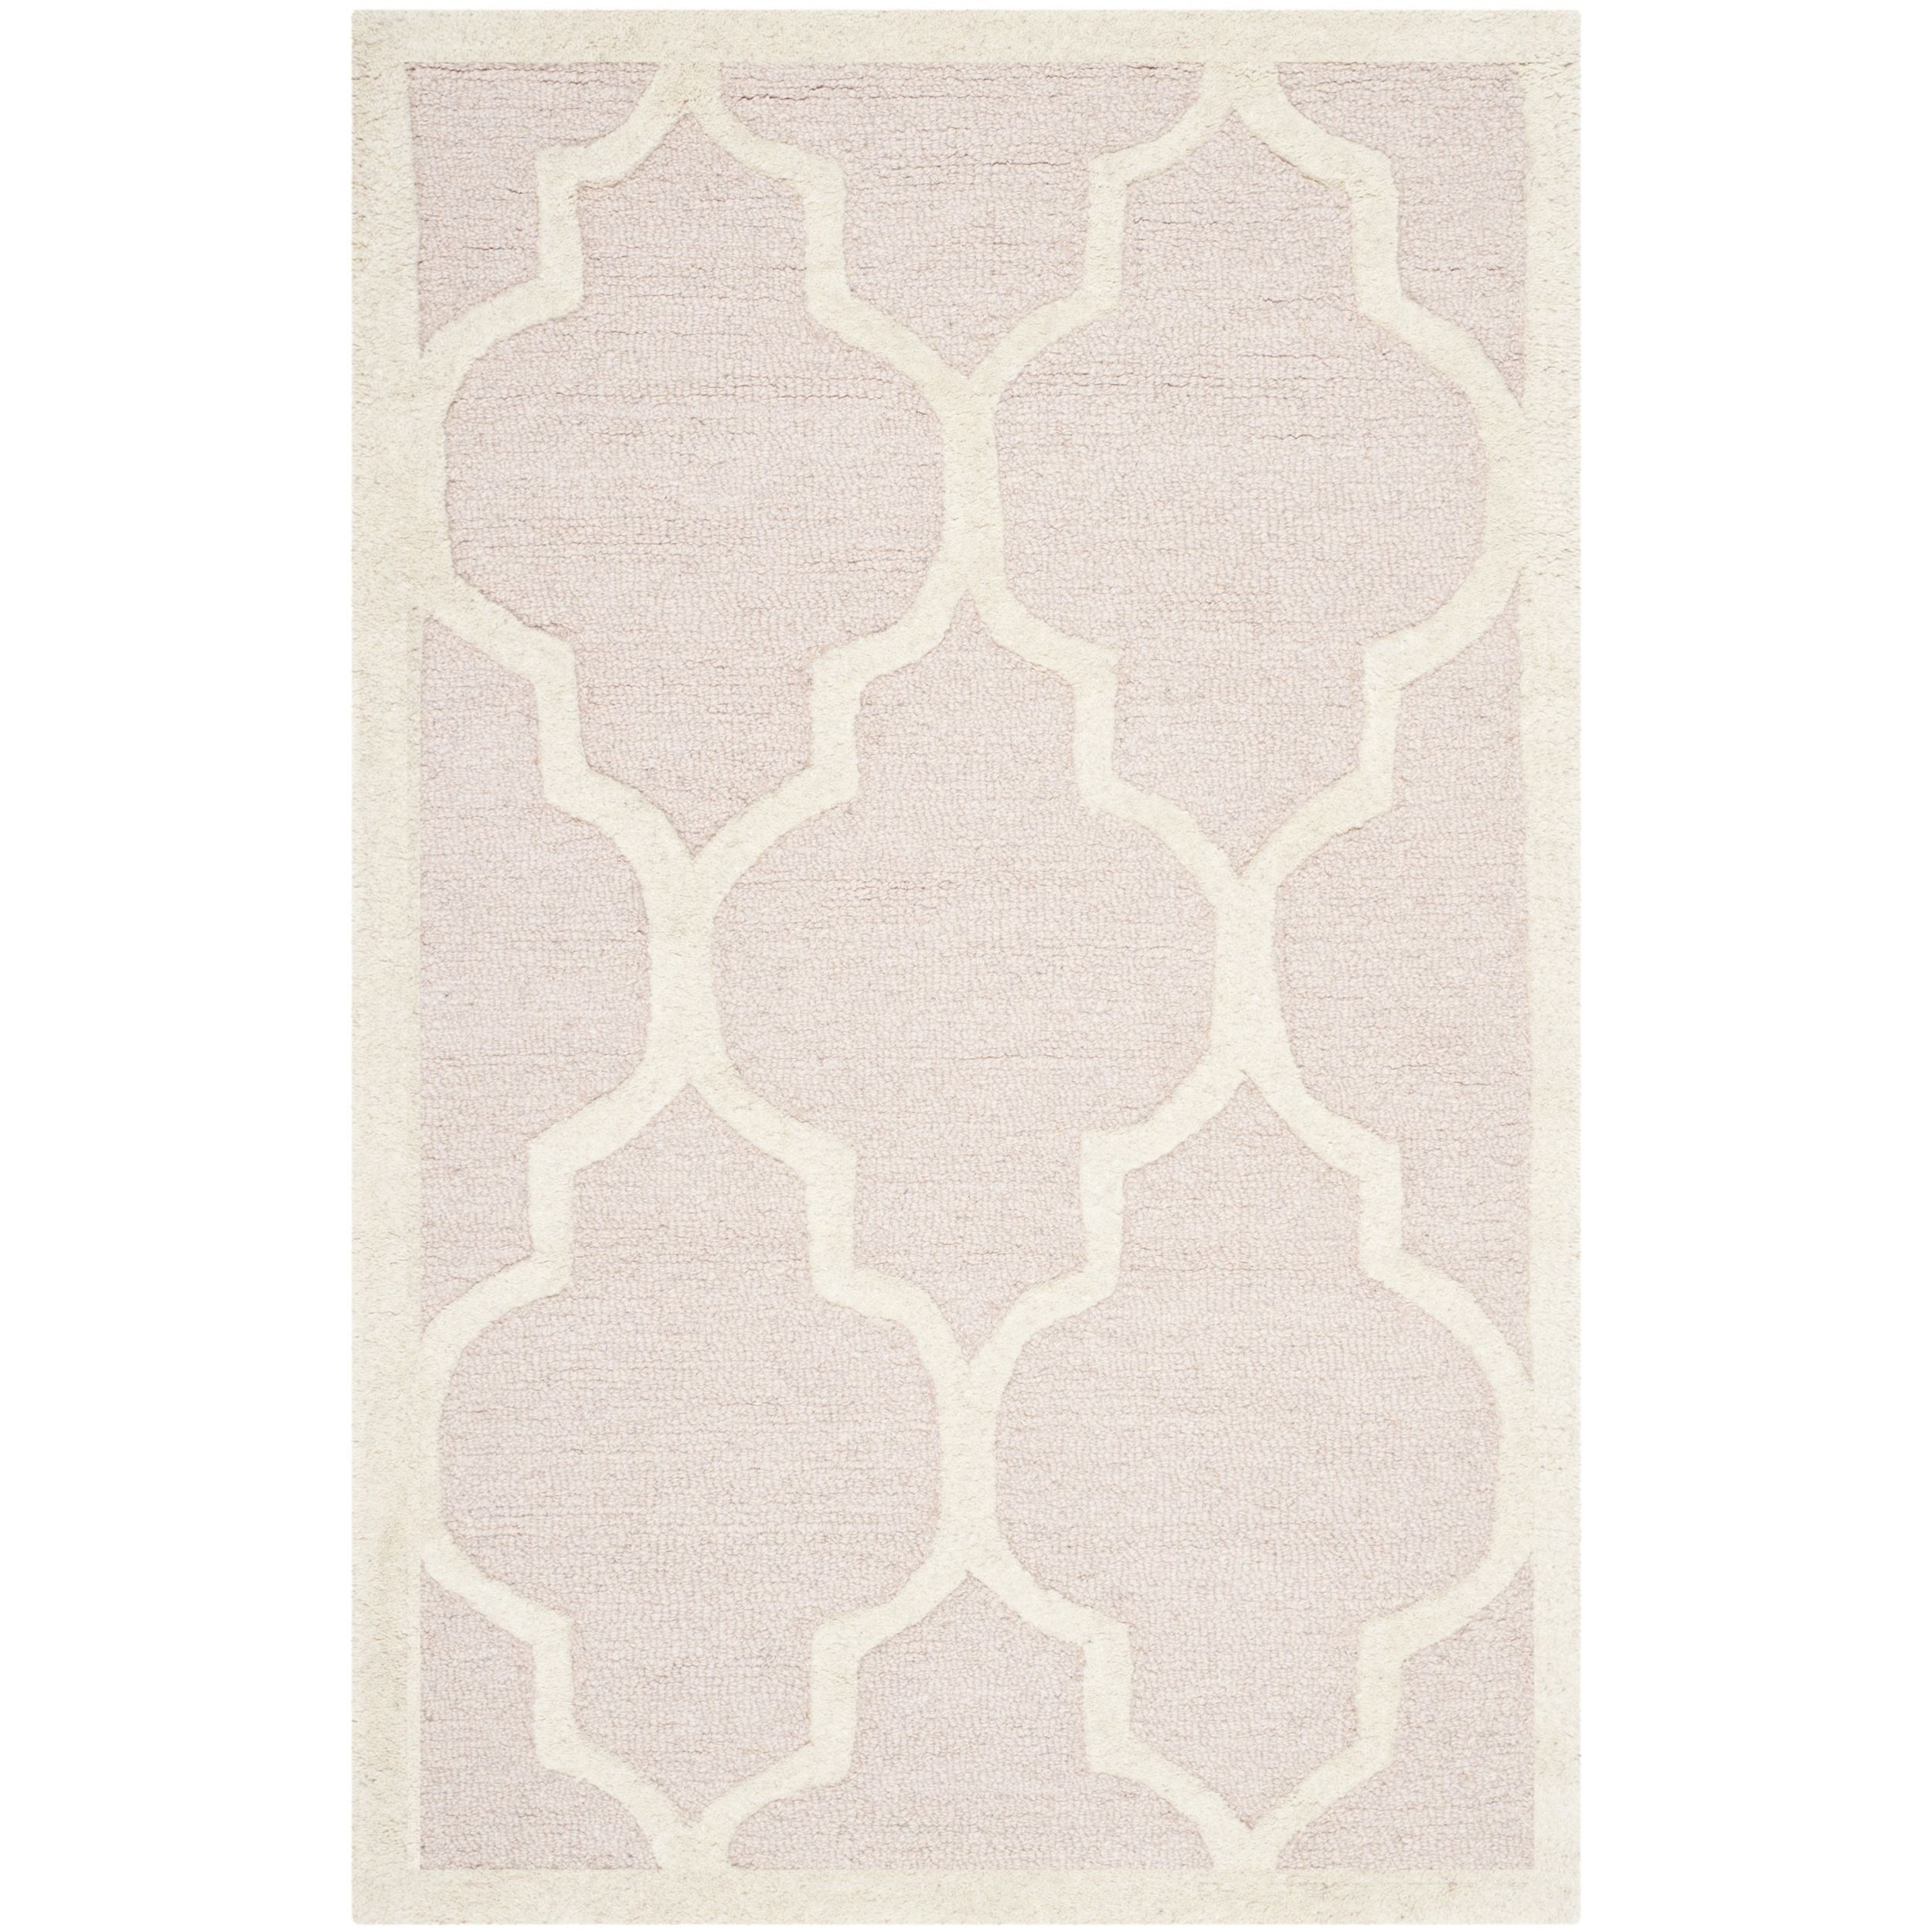 Safavieh Handmade Moroccan Cambridge Light Pink/ Ivory Wool Accent Rug (2' x 3') (CAM134M-2)